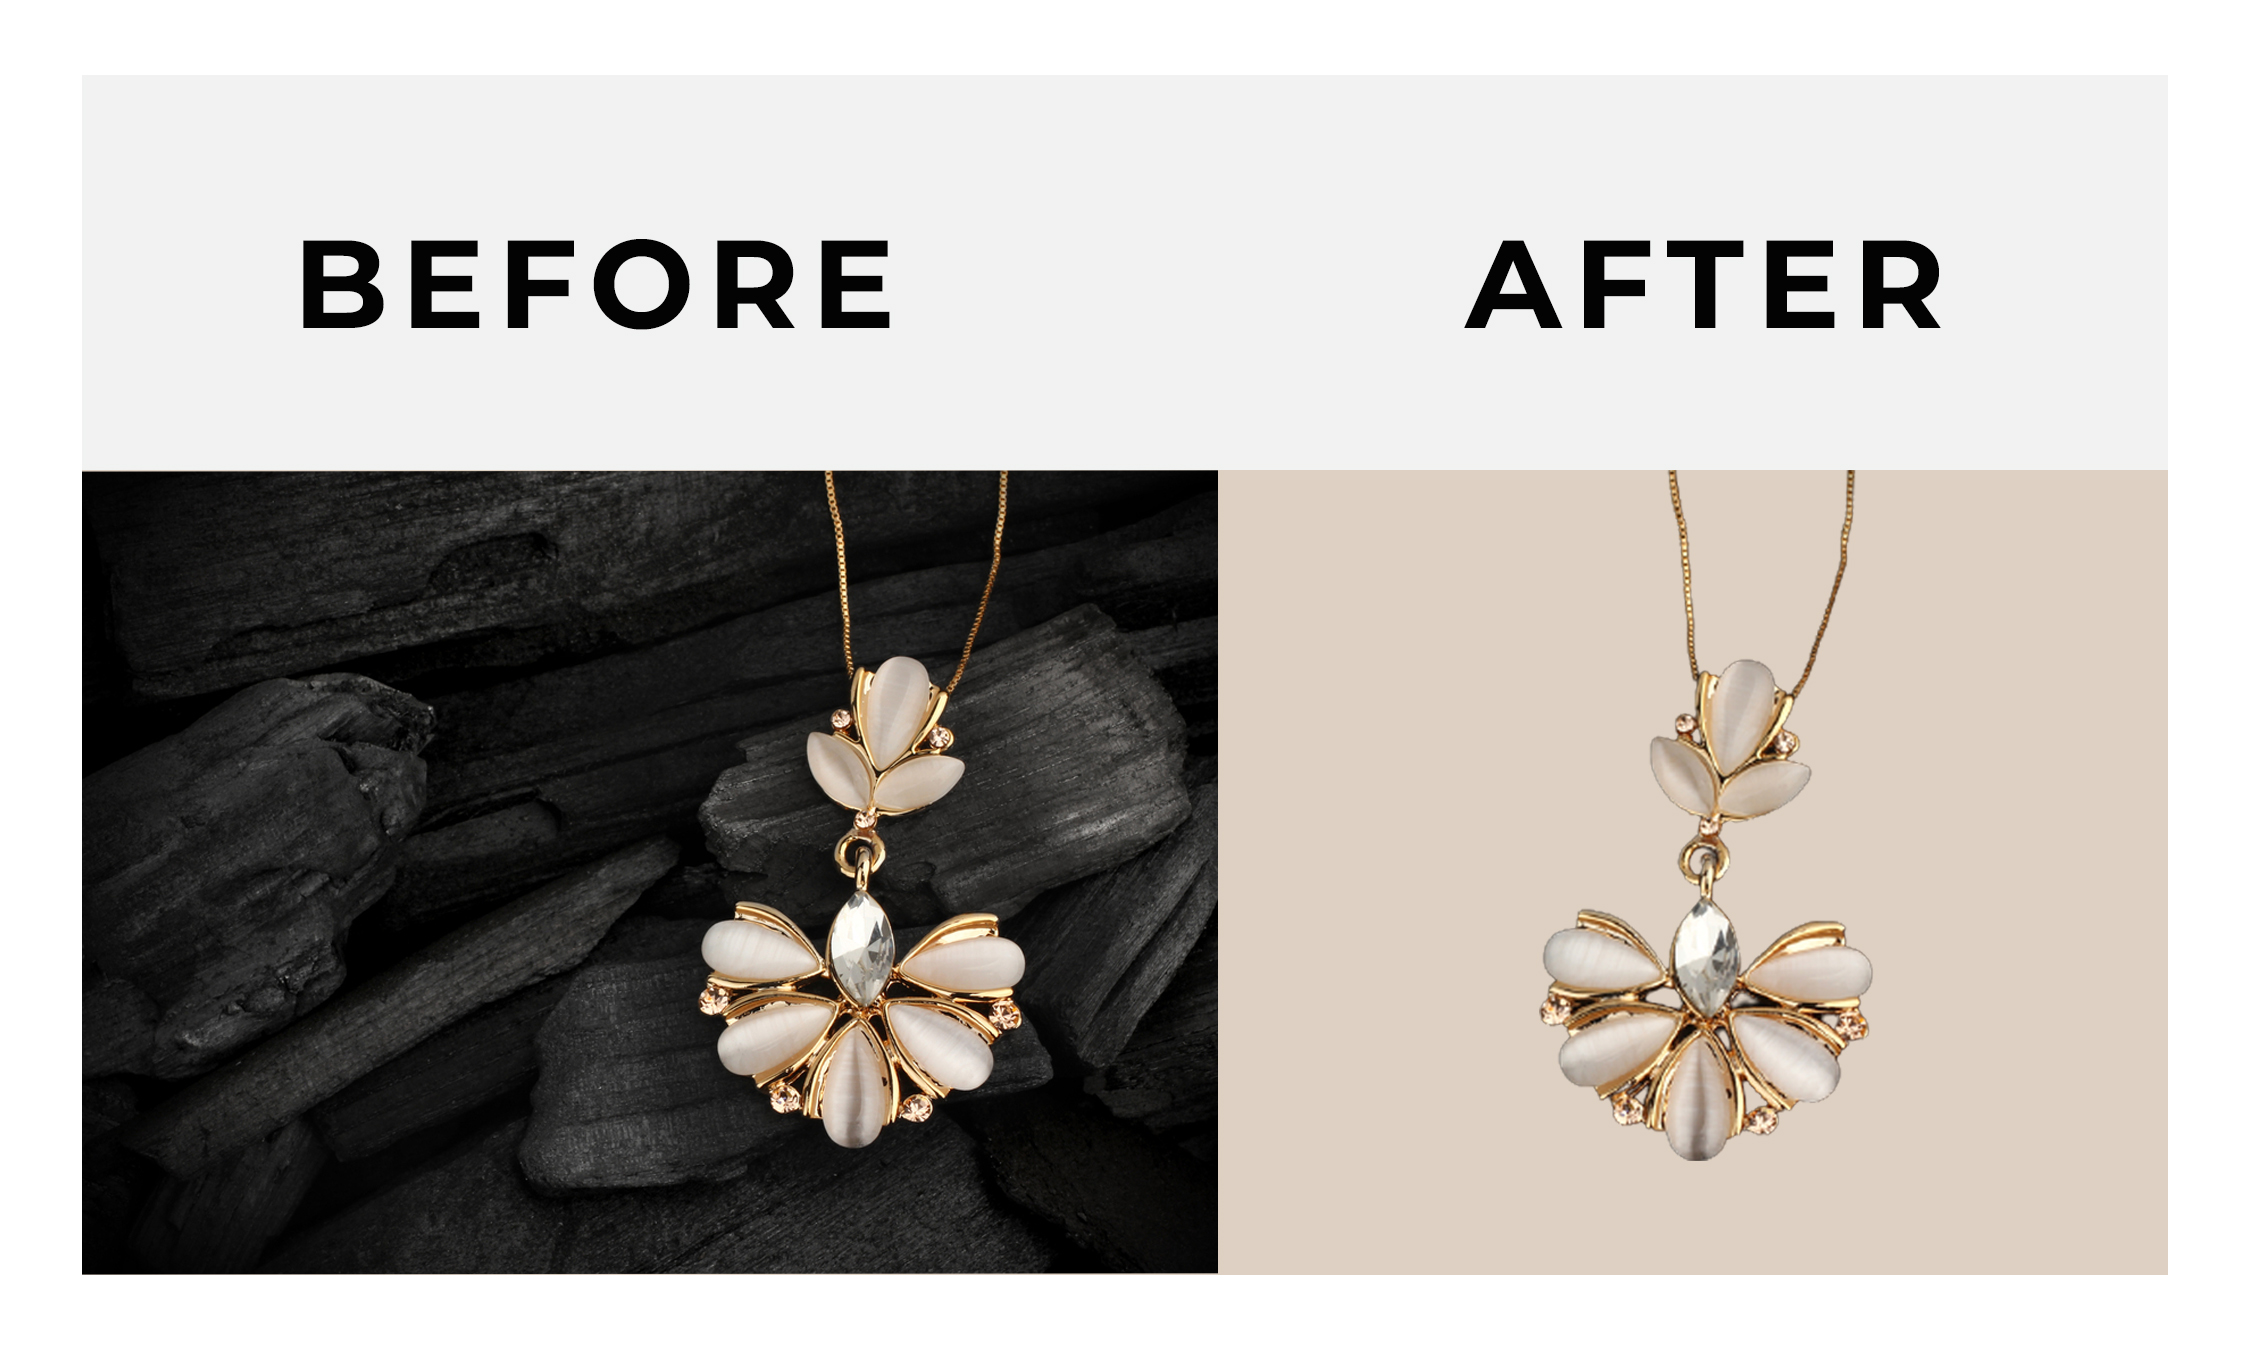 I will provide 5 photos background remove color correction and photo editing